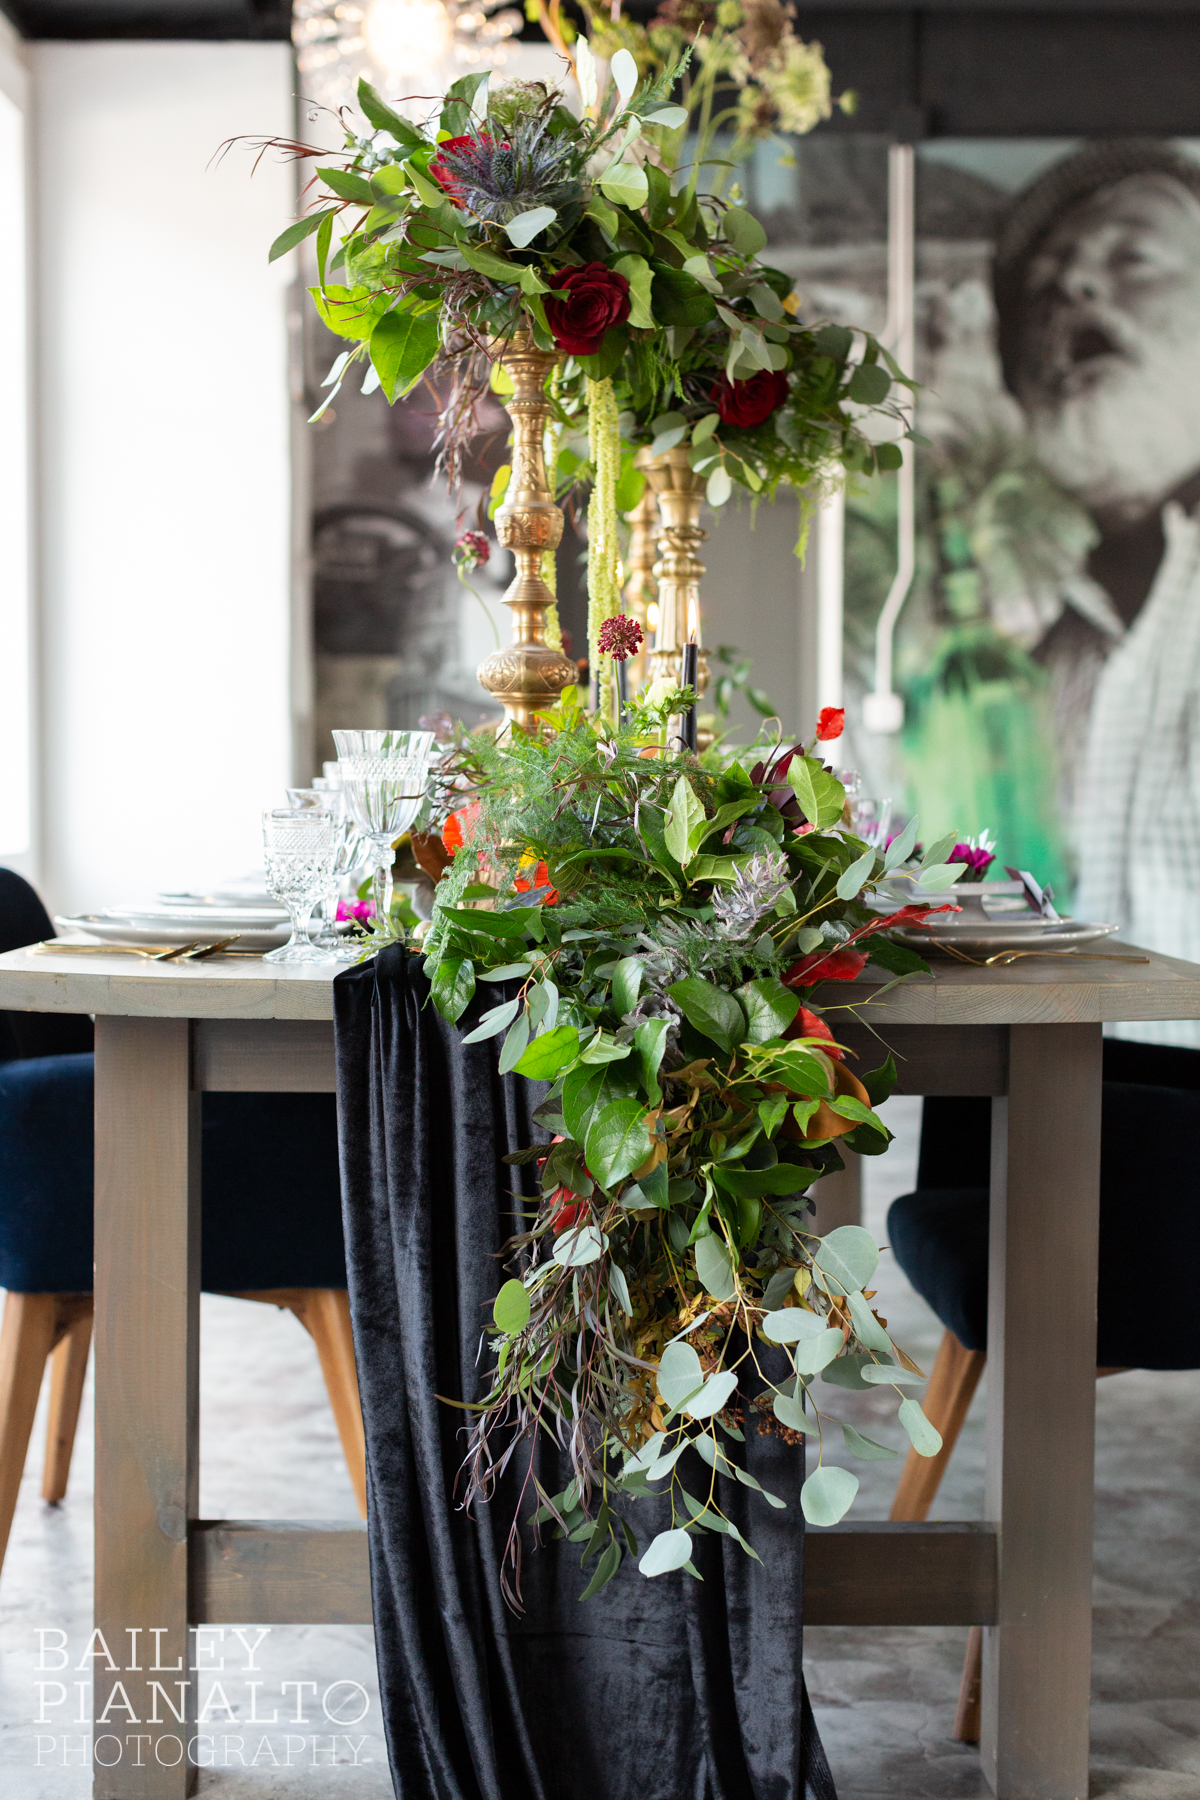 expert wedding floral planning advice and inspiration from Fiore Floral Studio